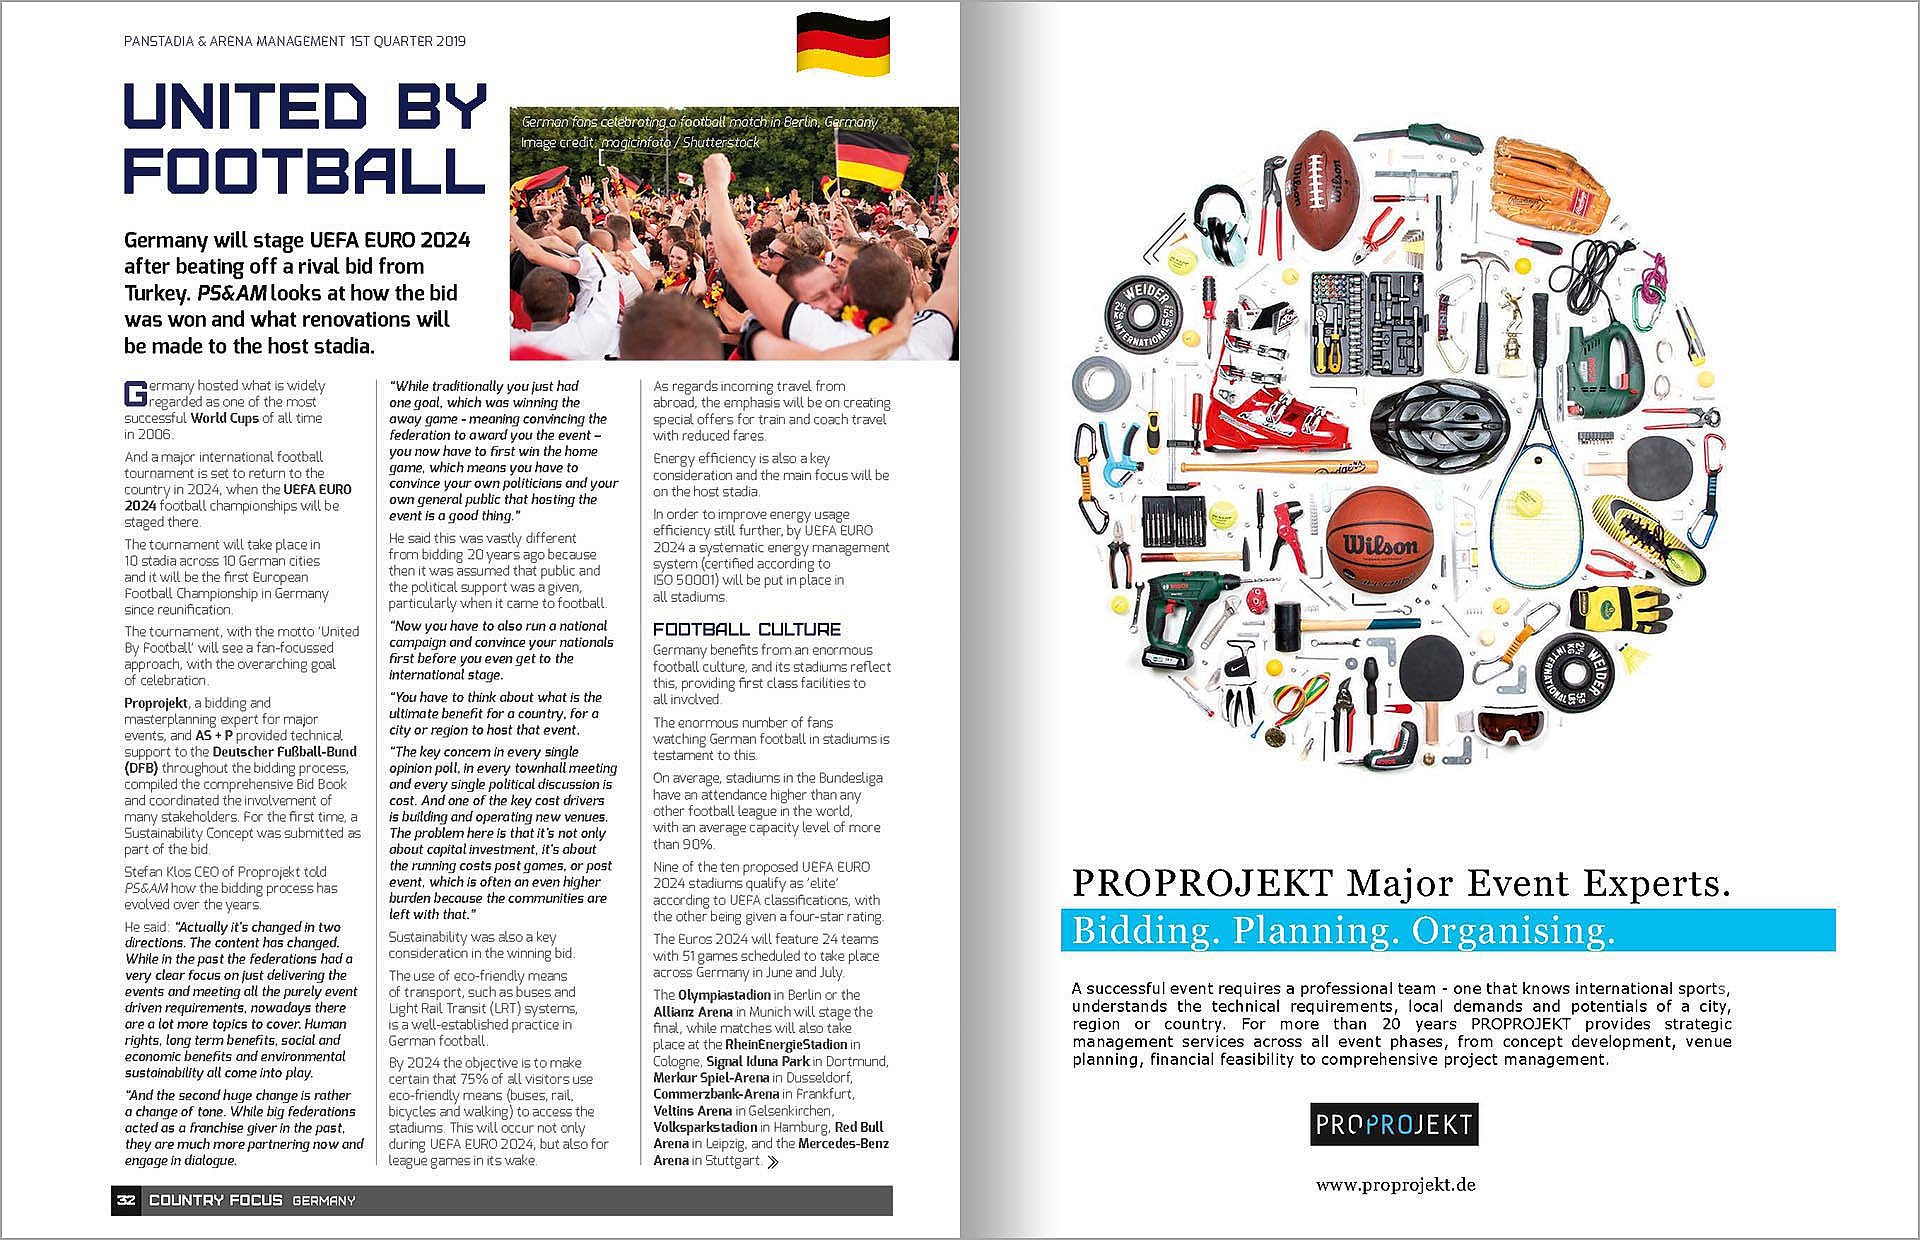 PanStadia & Arena Management Magazine_01